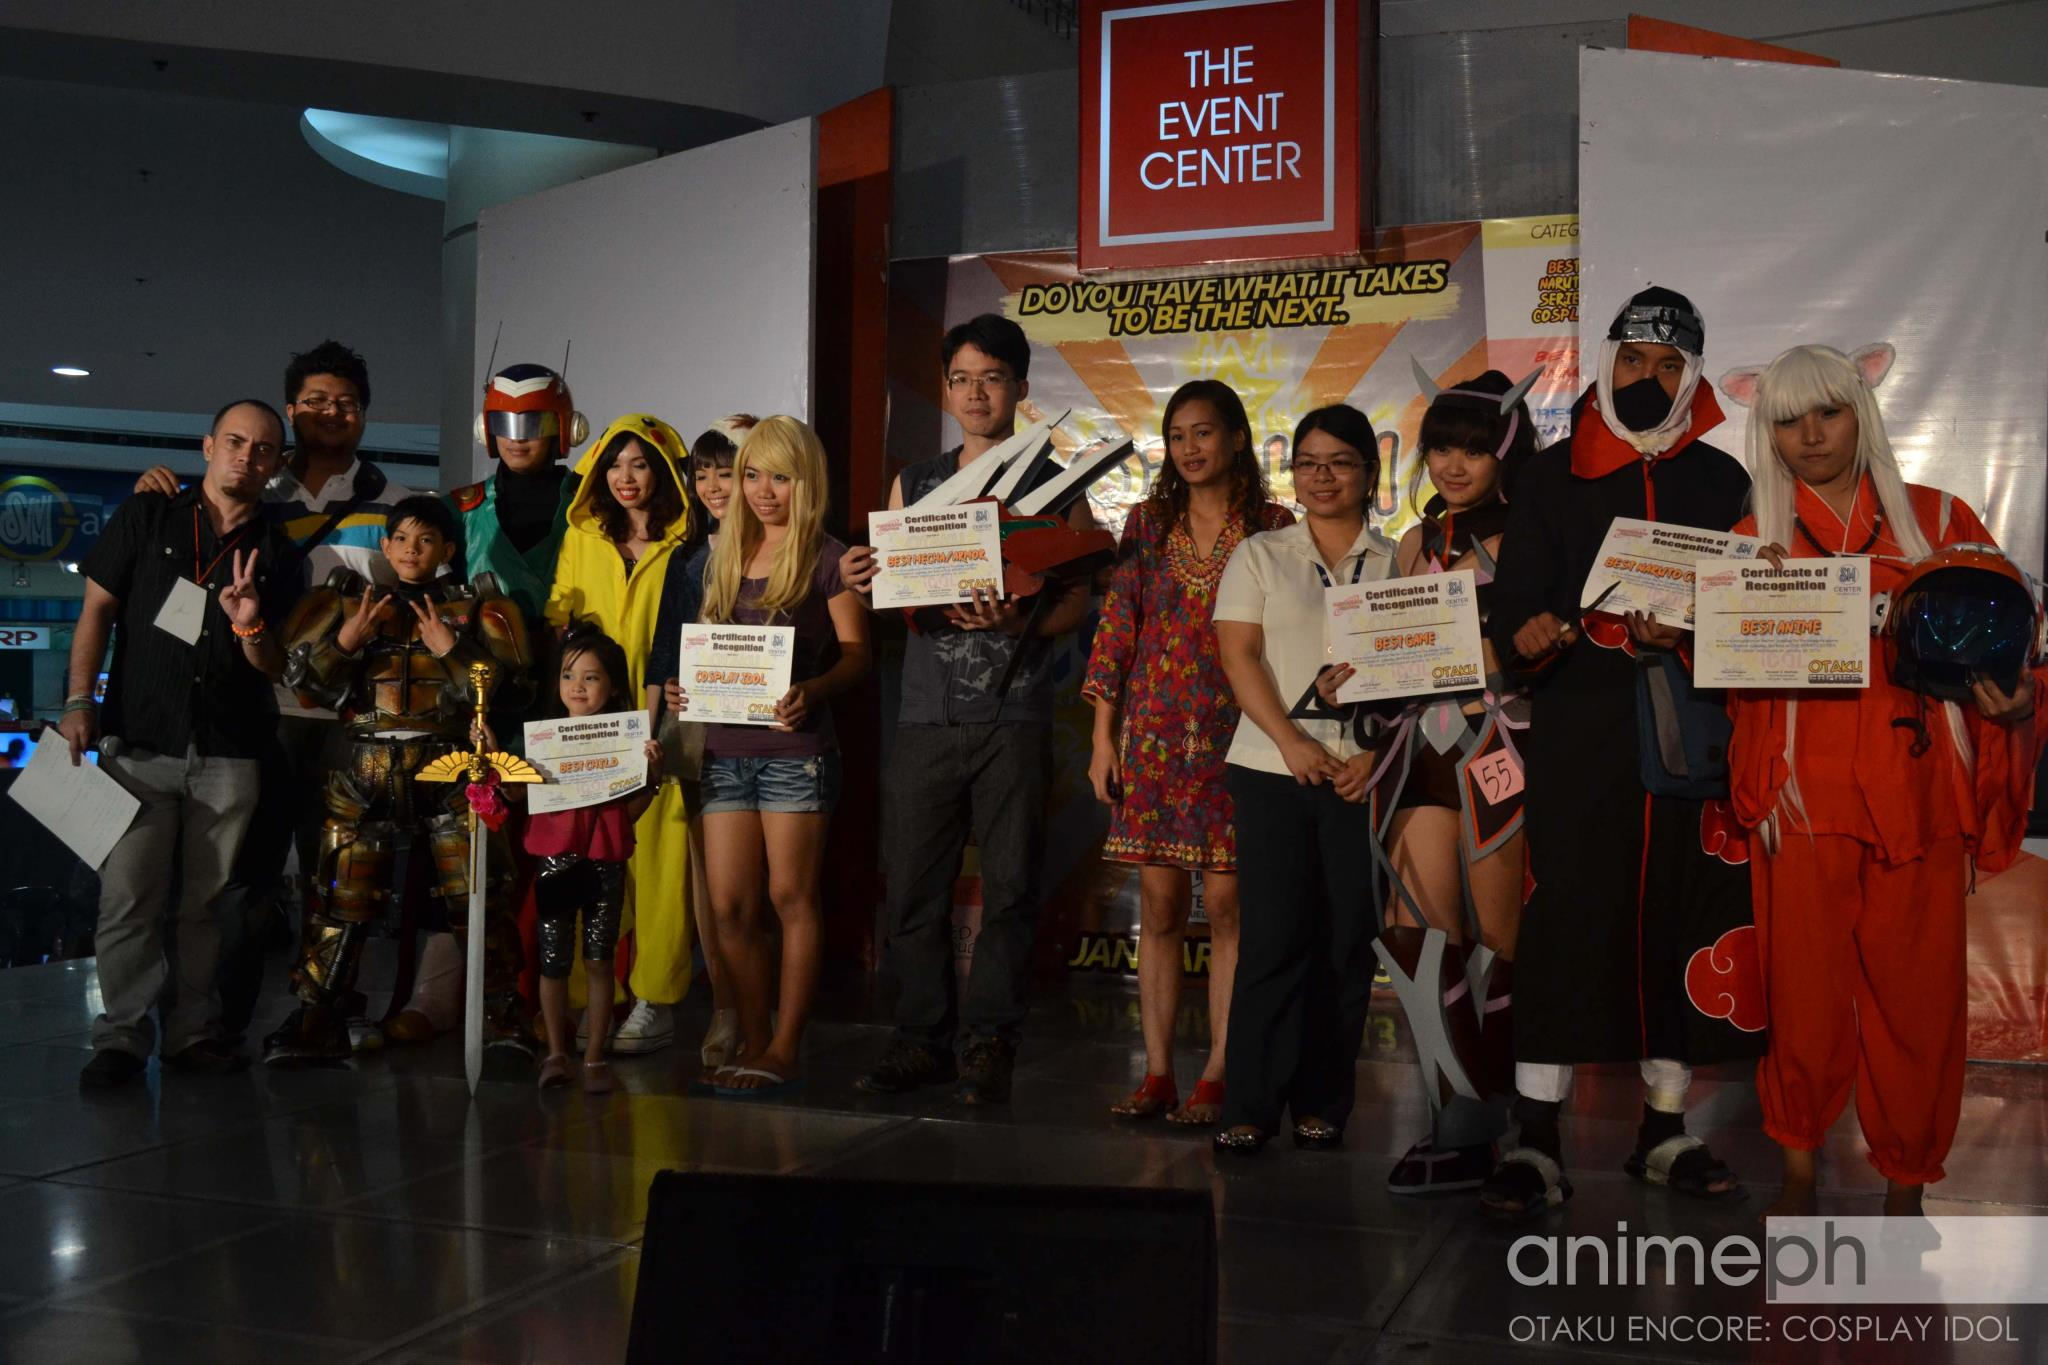 CONGRATULATIONS TO THE OTAKU ENCORE: COSPLAY IDOL @ SM CENTER VALENZUELA WINNERS!